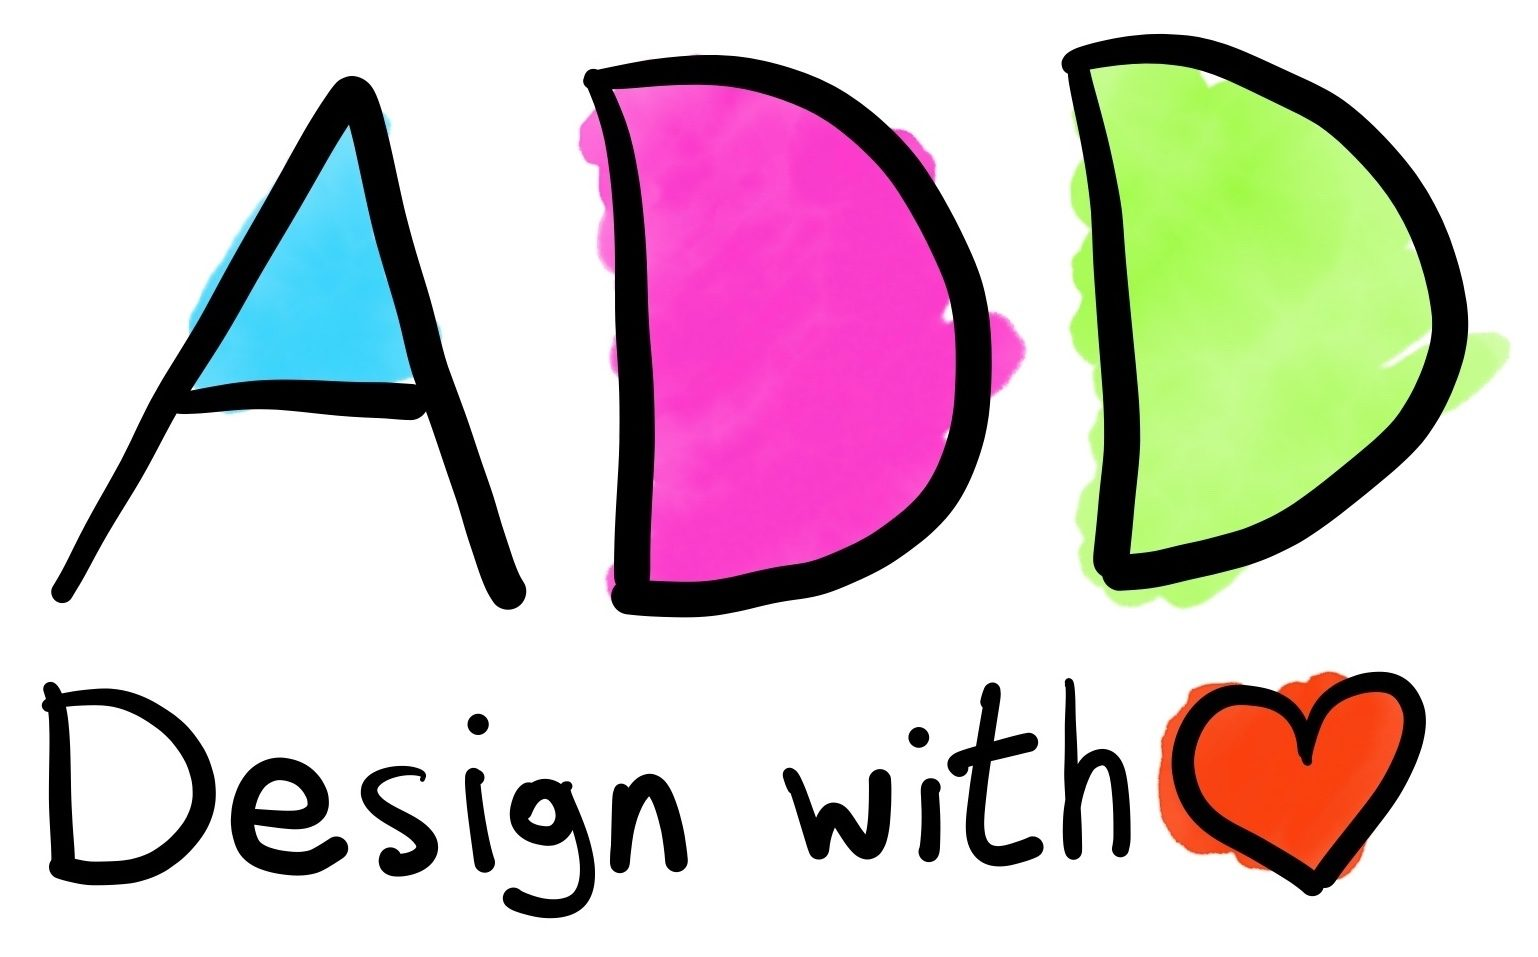 addesign.at